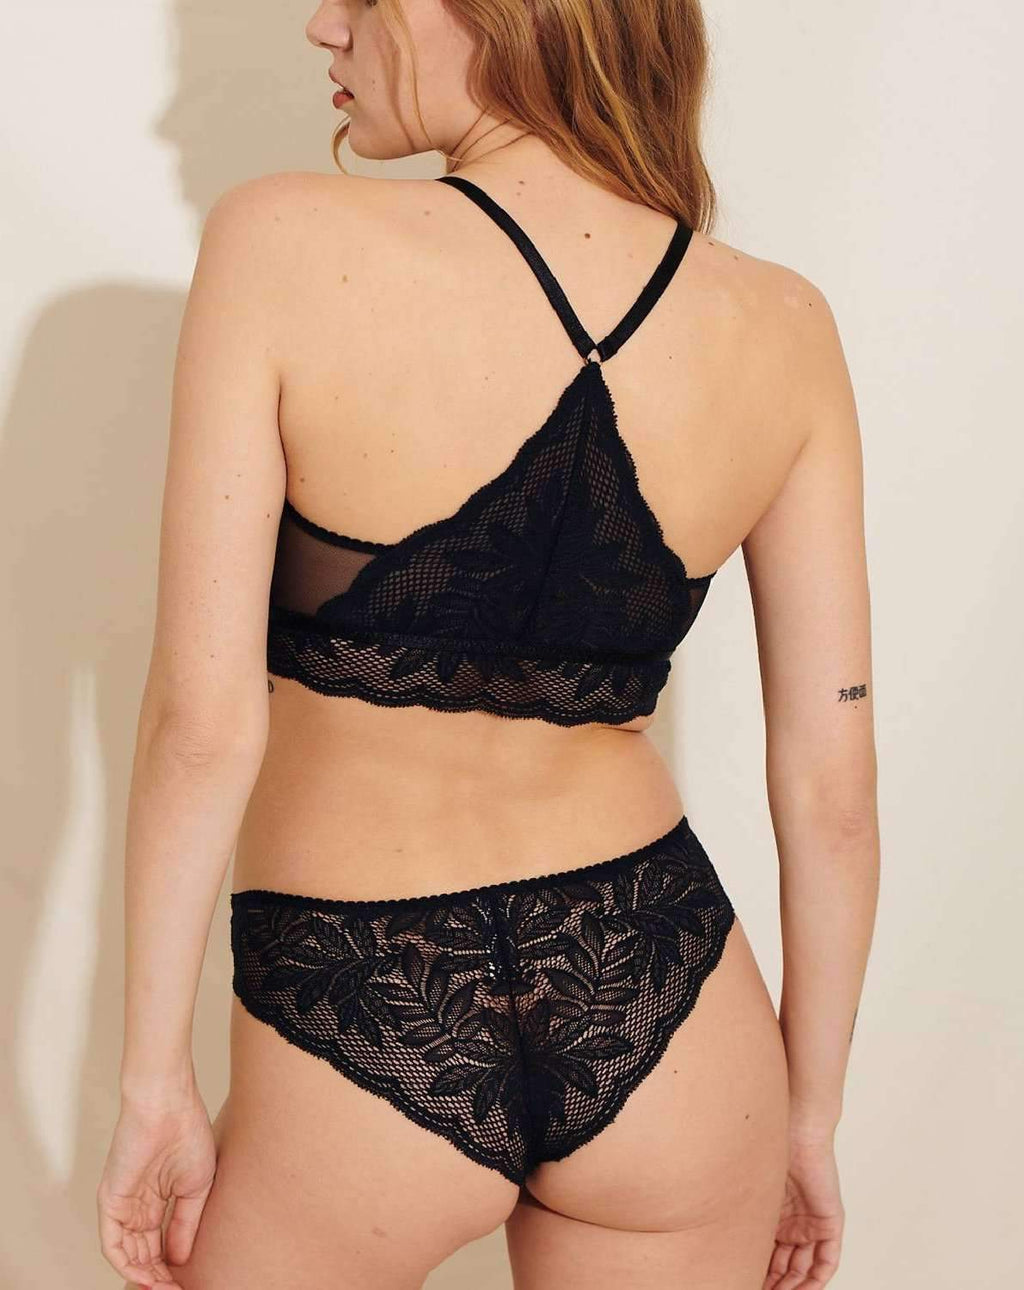 Victoria briefs Undertøy Underprotection